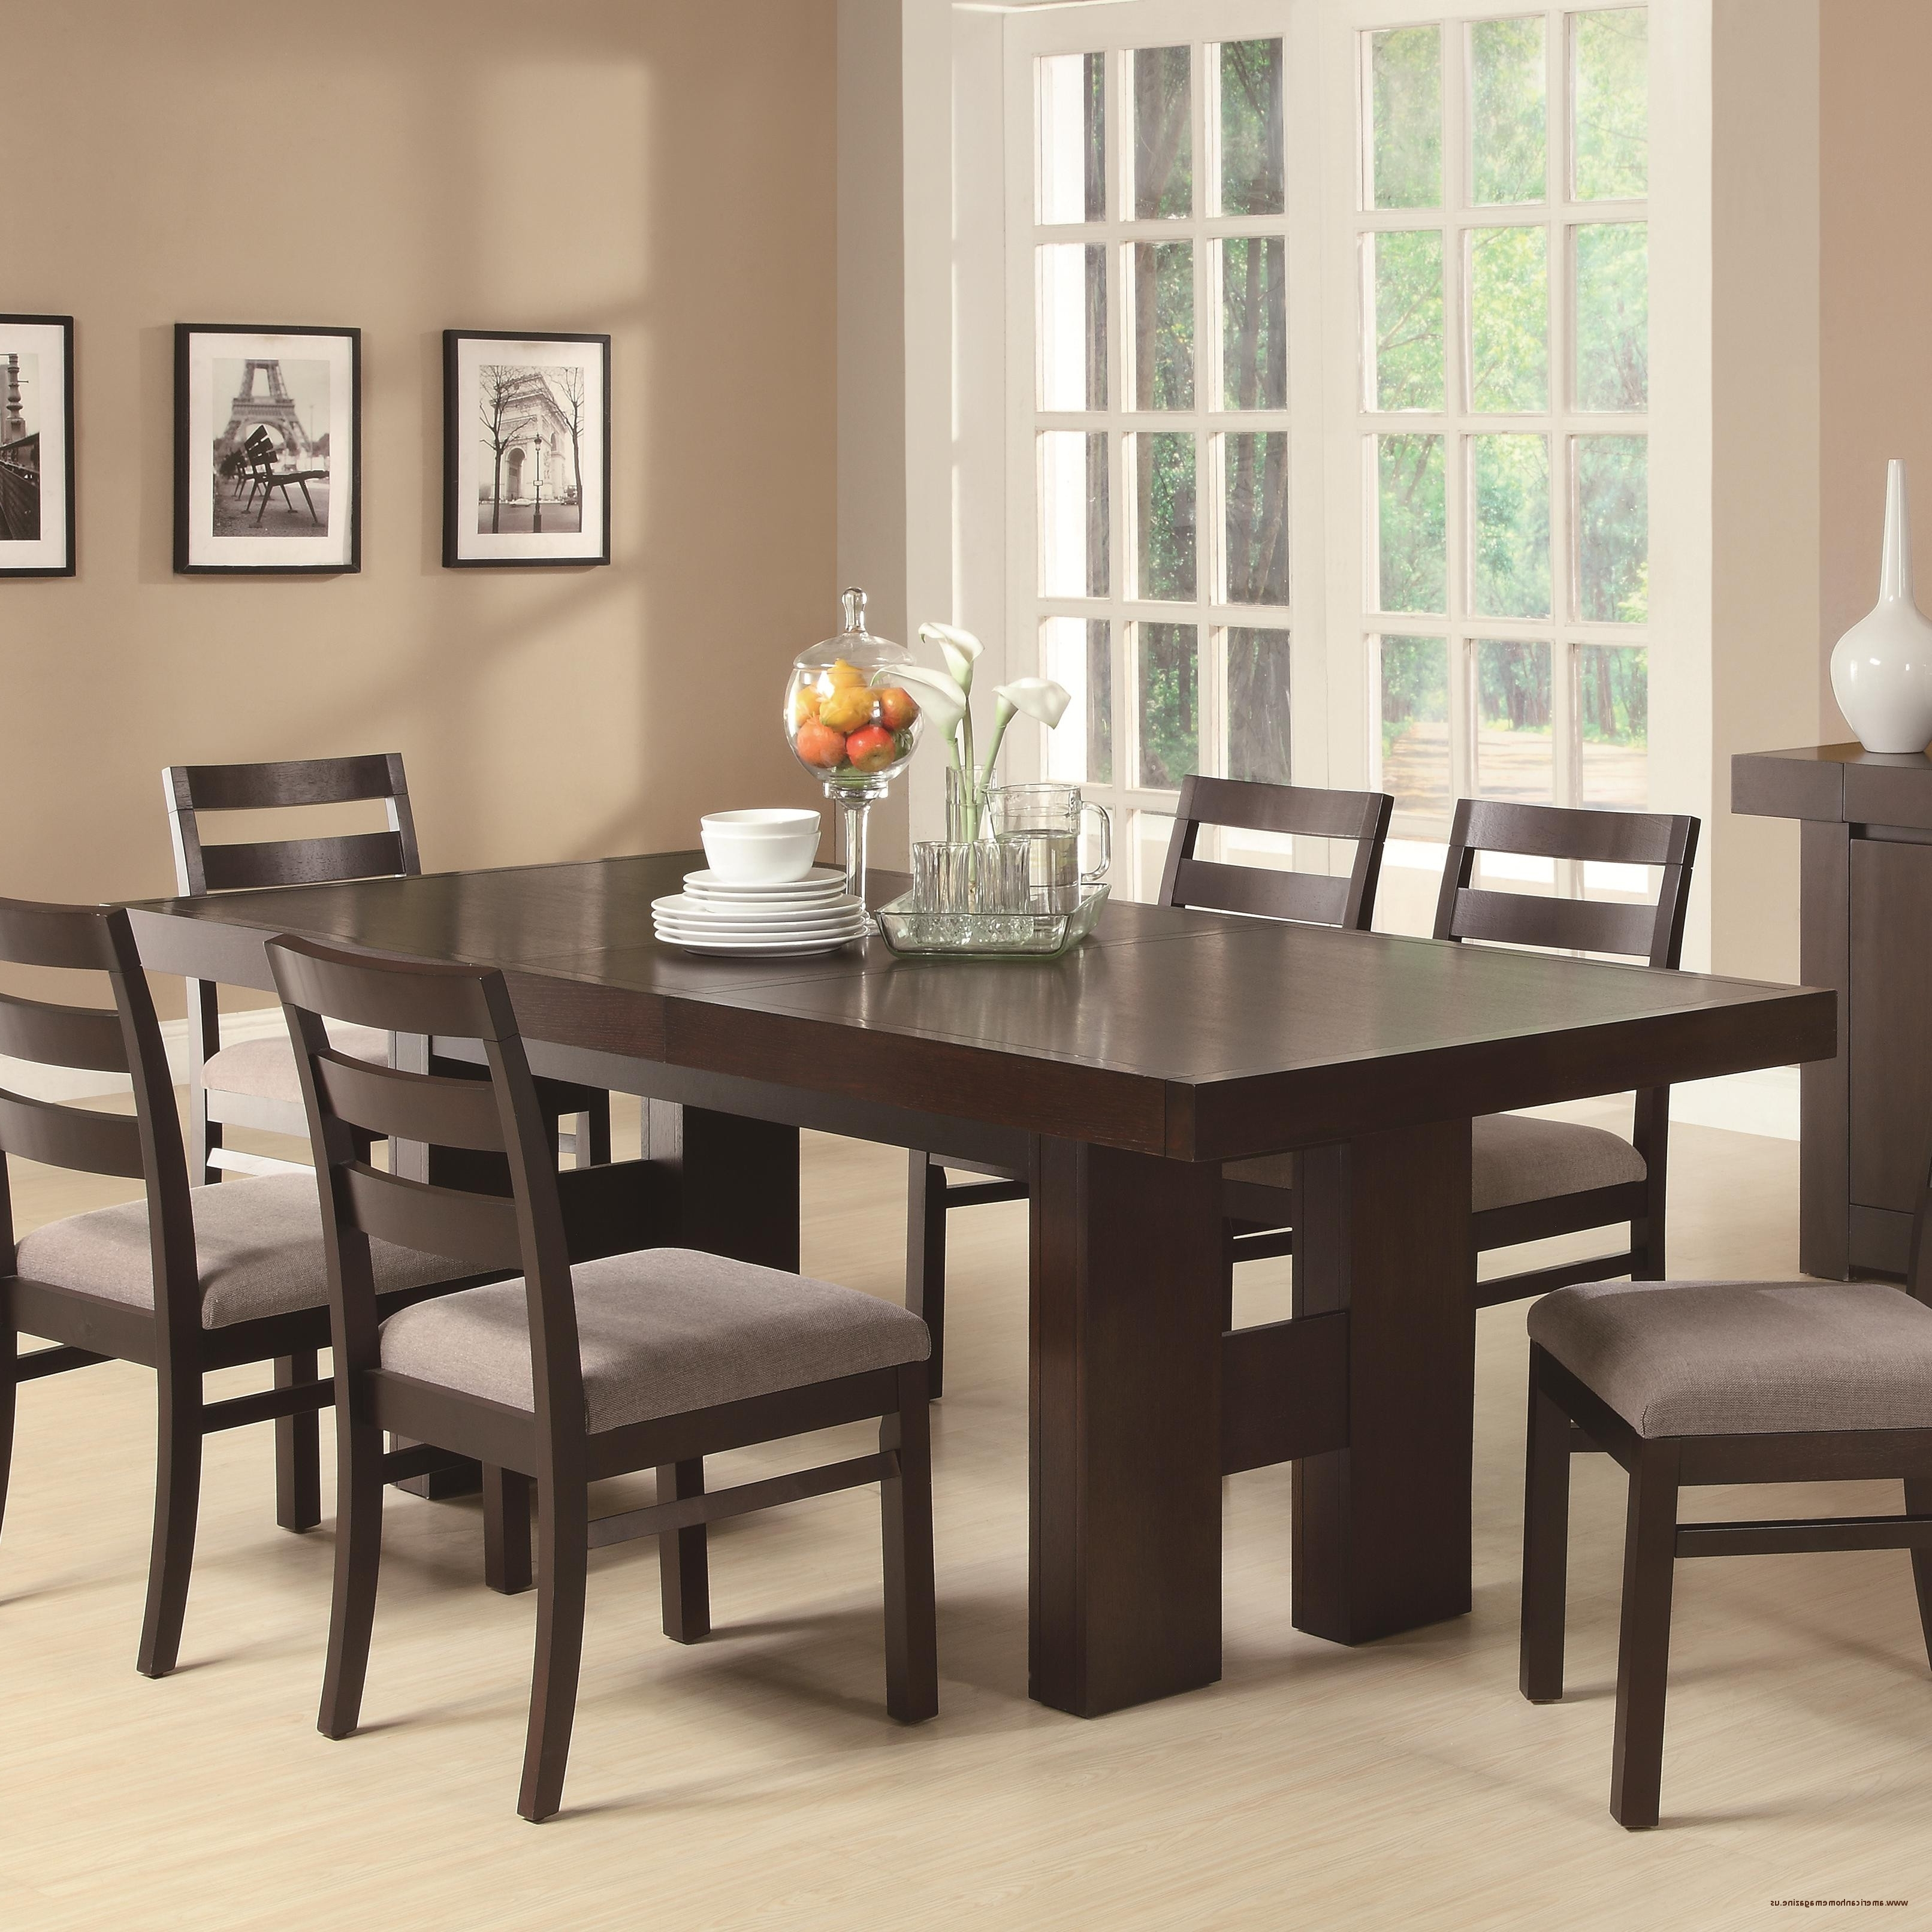 Ebay Dining Suites in 2018 Beautiful Used Dining Room Sets Ebay And 4 Dining Room Chairs Ebay